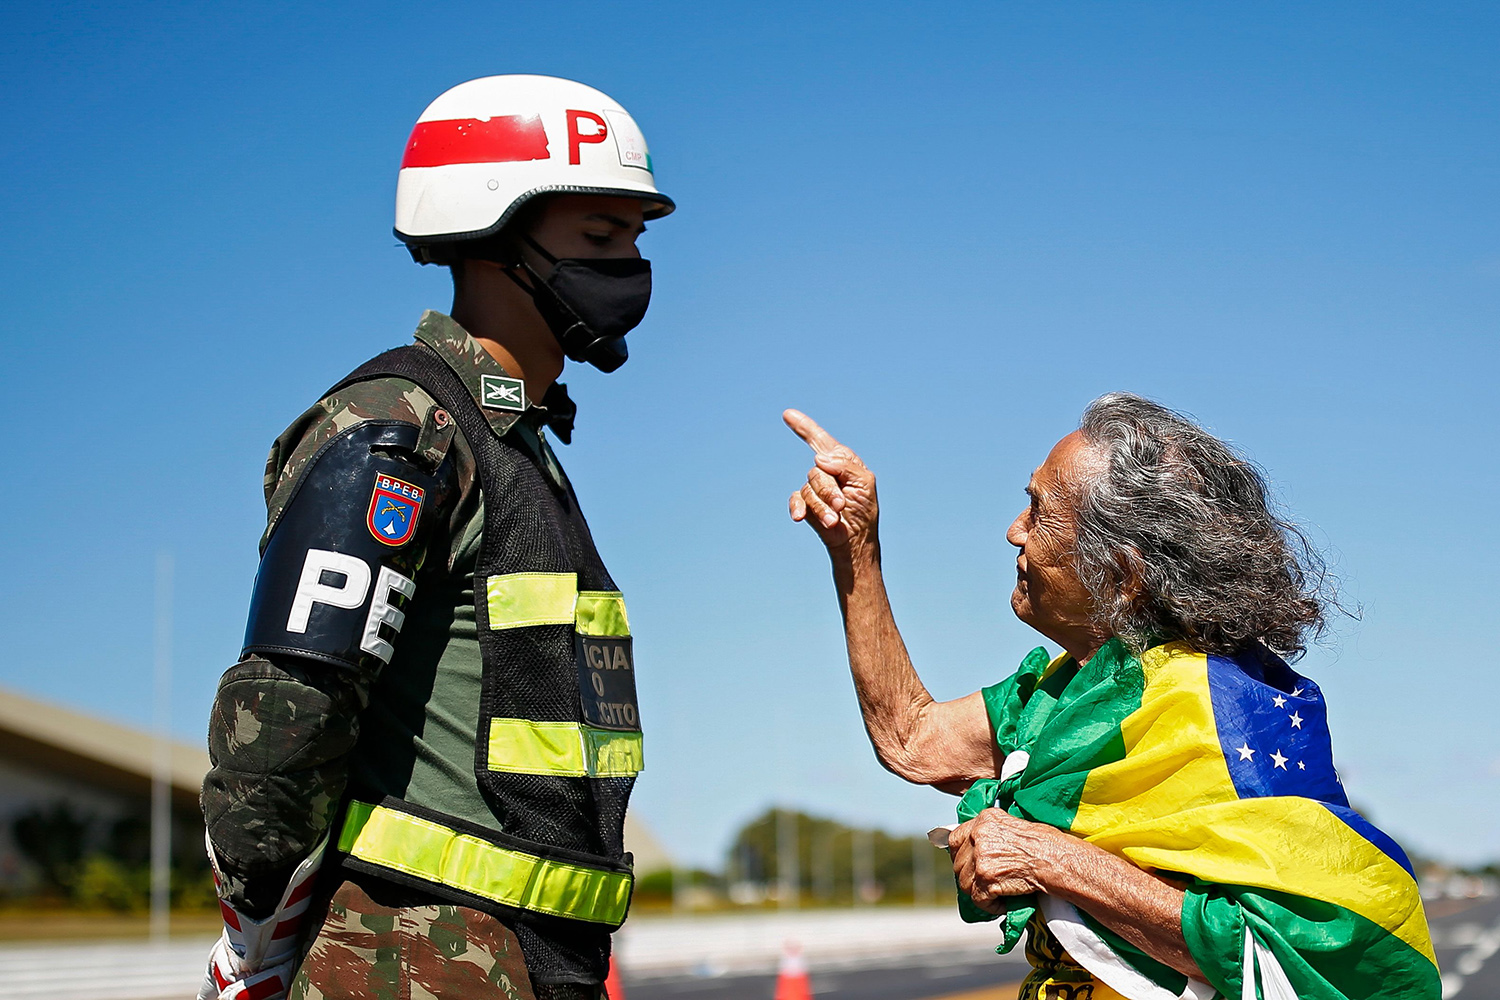 A supporter of Brazilian President Jair Bolsonaro speaks to a soldier as she takes part in a protest against the coronavirus lockdown outside the army headquarters in Brasilia on June 14. SERGIO LIMA/AFP via Getty Images